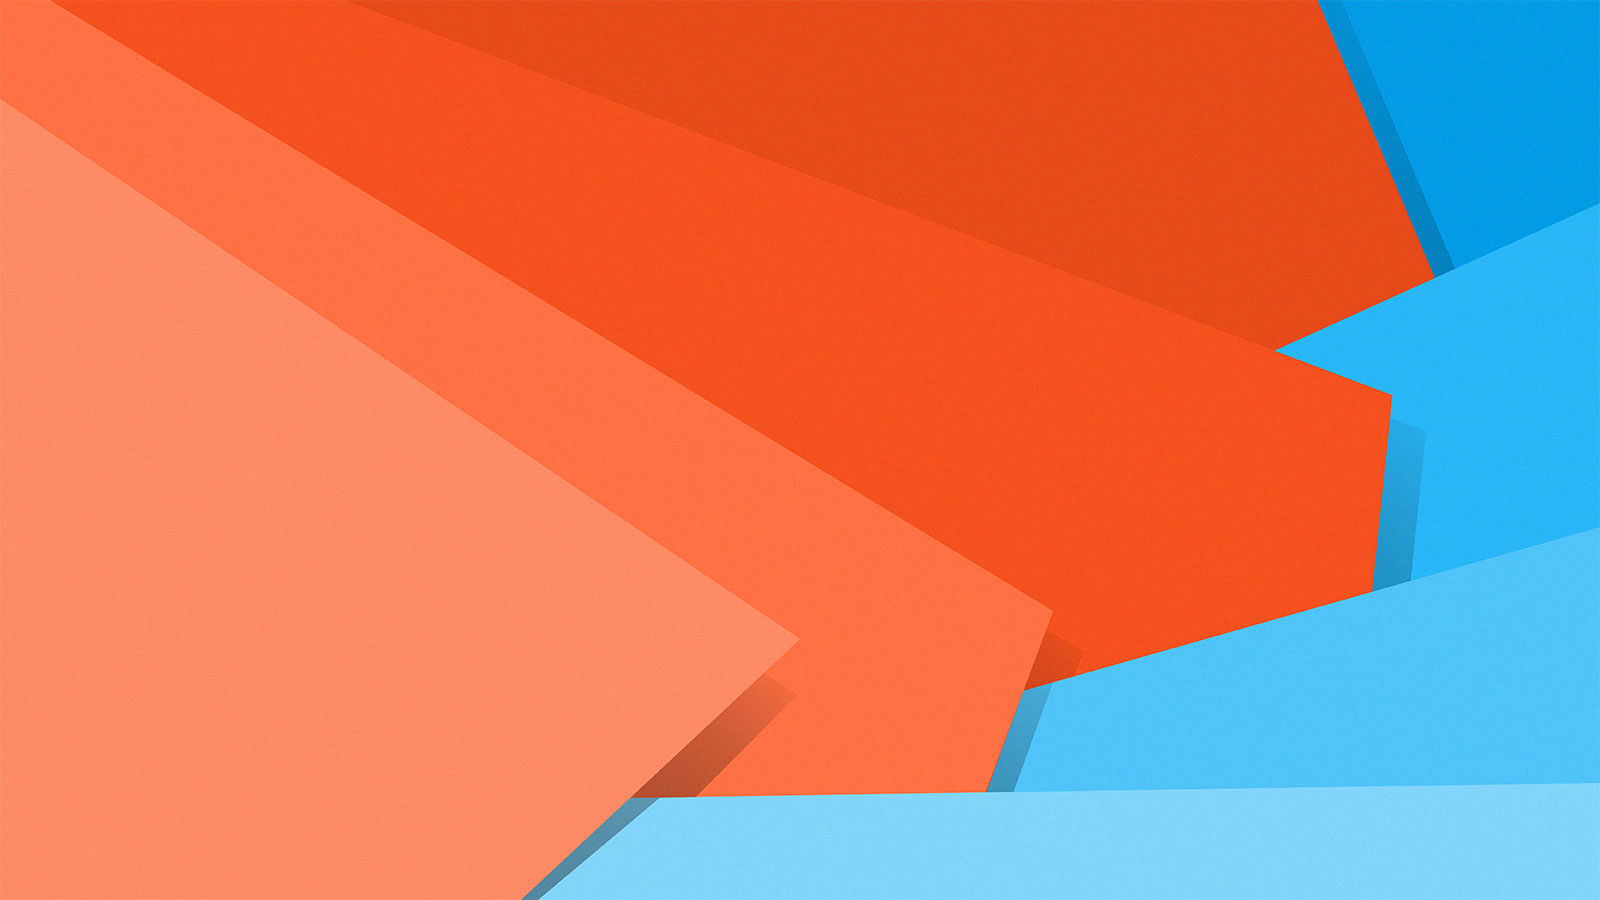 40 Free Material Design Patterns